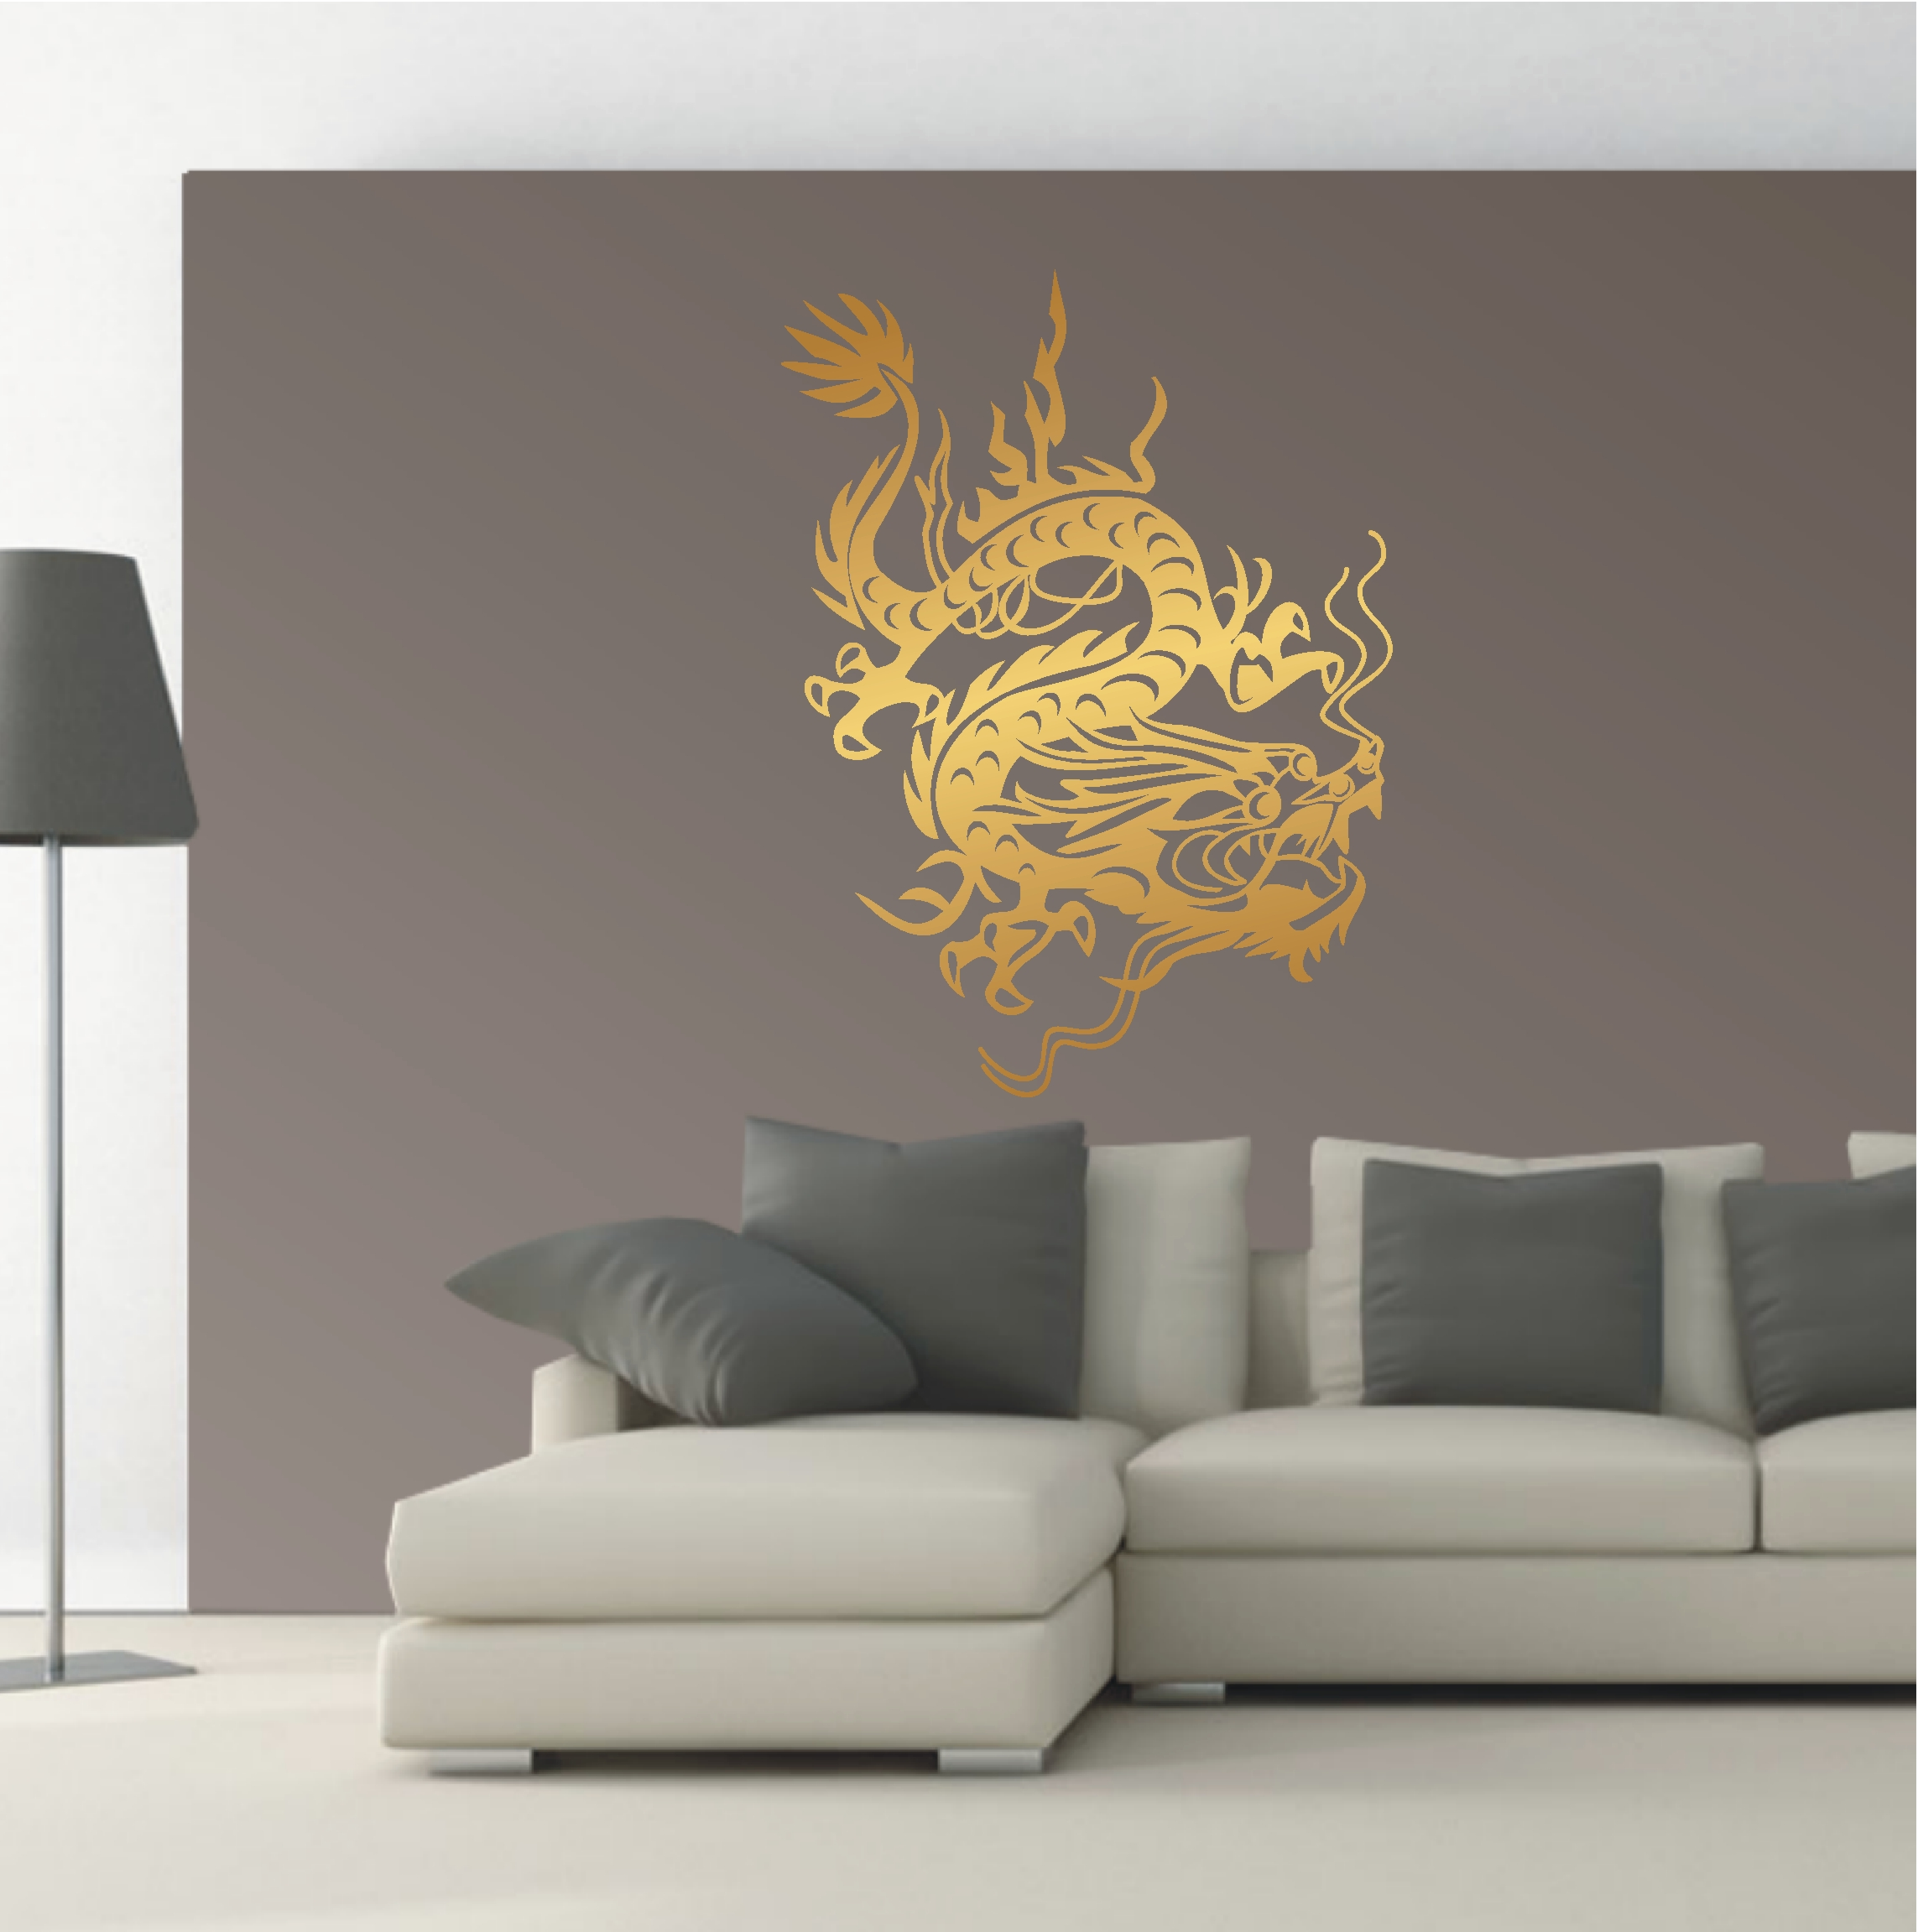 wandtattoo wandaufkleber china drache asia style feuerdrache ornament 298 xl ebay. Black Bedroom Furniture Sets. Home Design Ideas